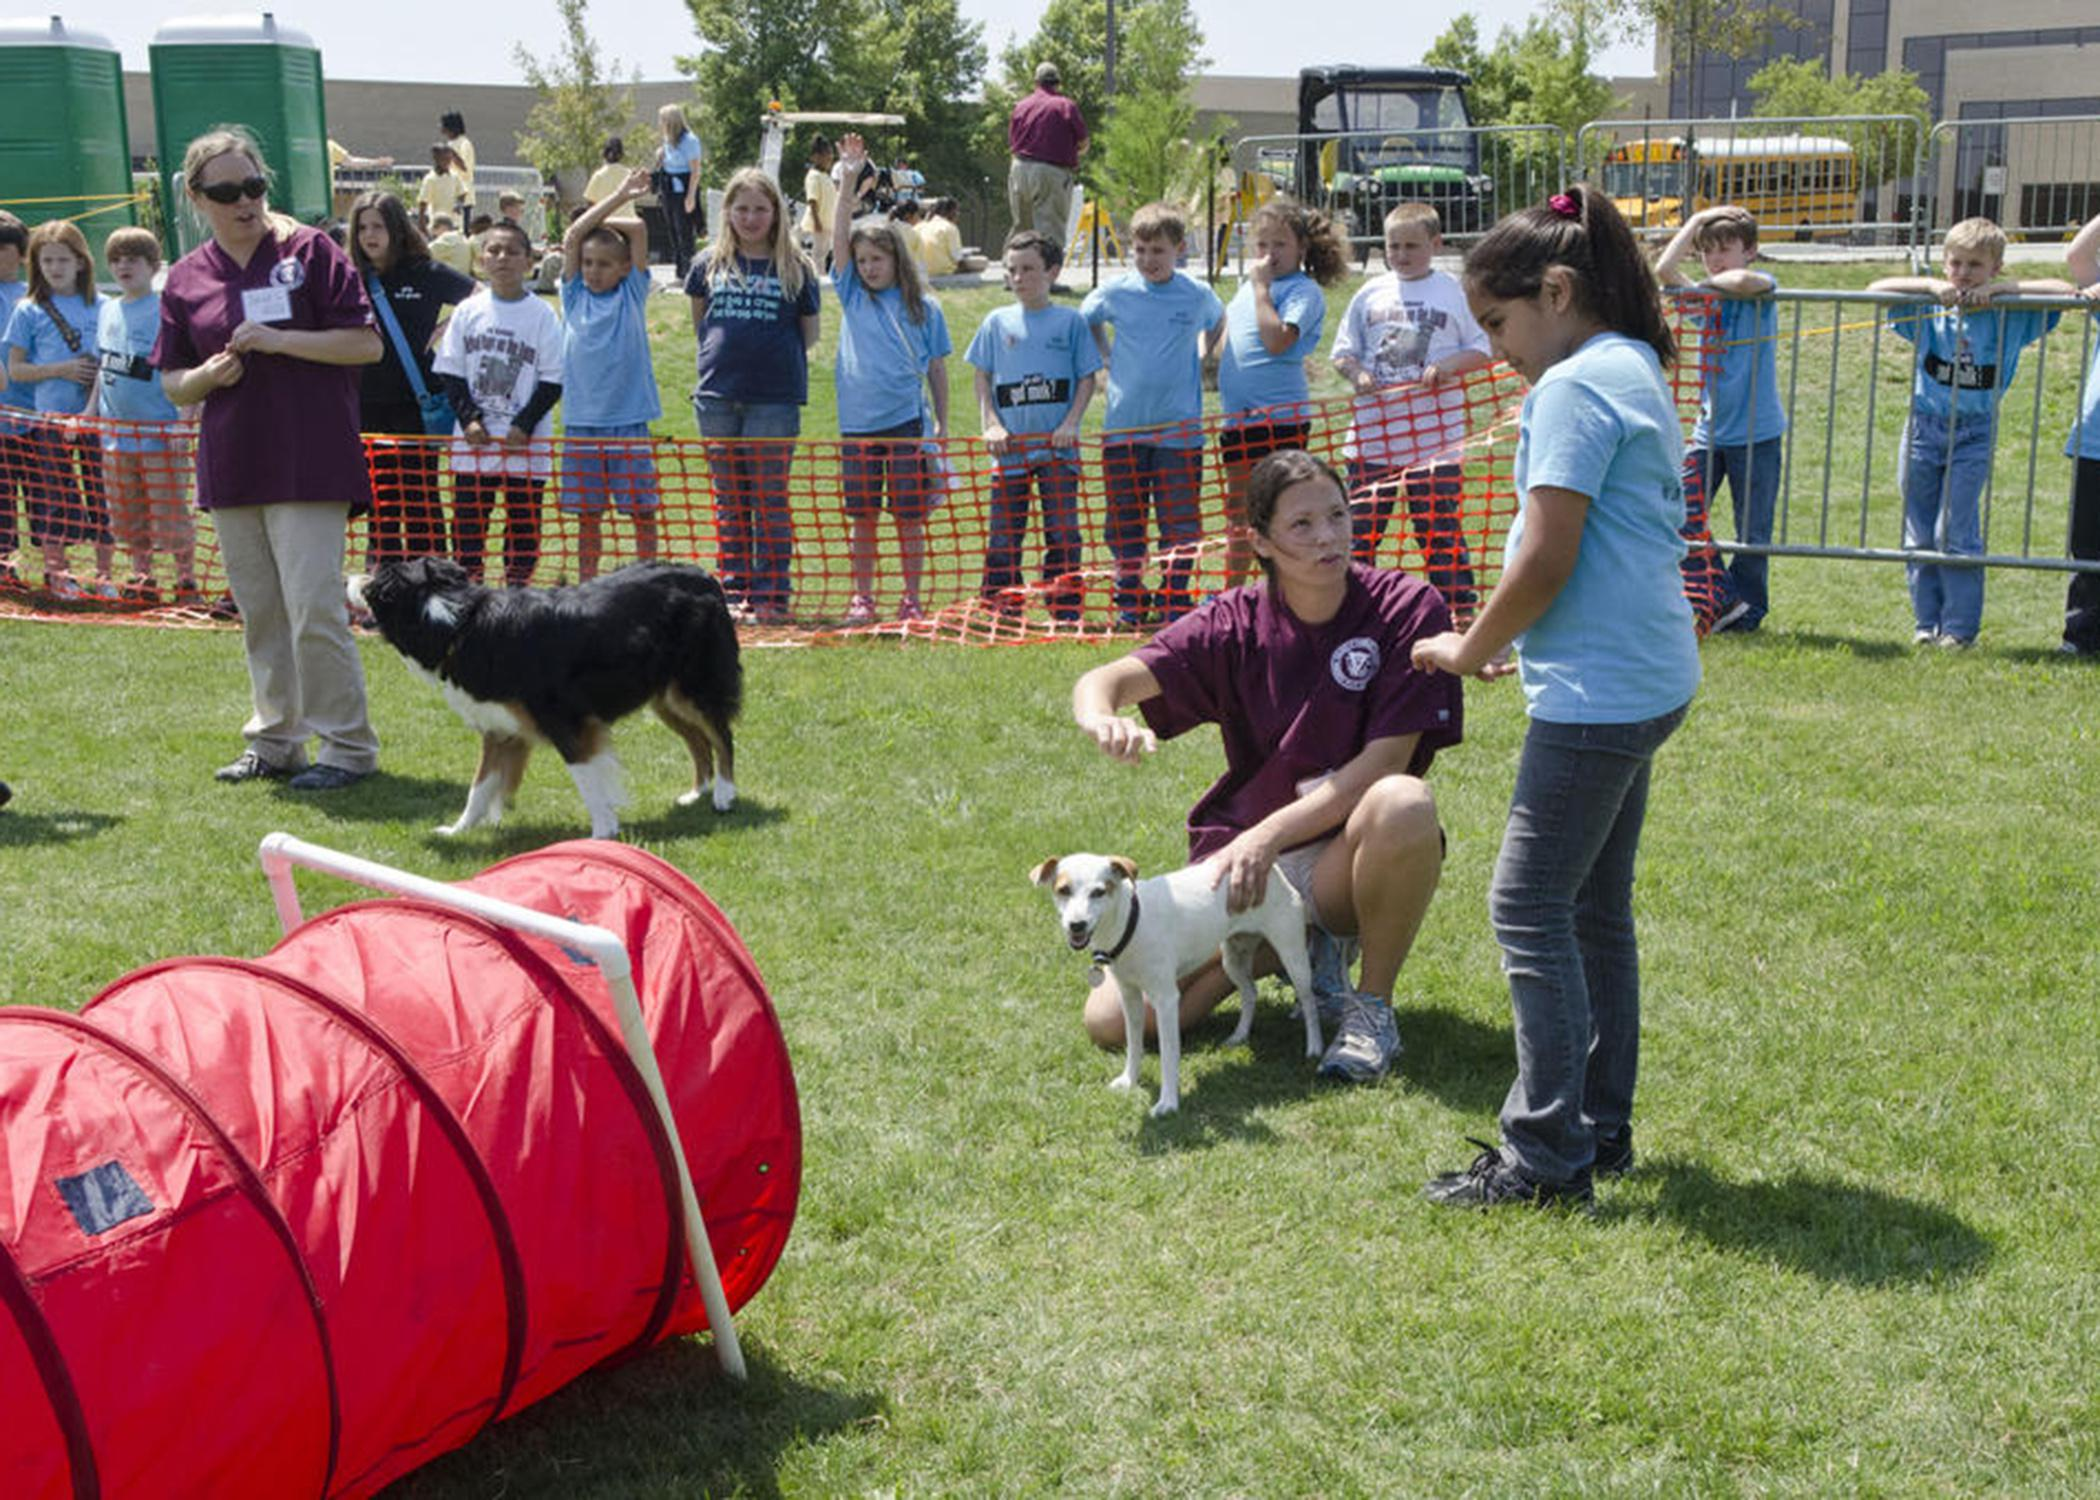 The Mississippi State University College of Veterinary Medicine will host its annual Open House April 5 and 6. Students enjoy the hands-on activities and demonstrations. (Photo by MSU College of Veterinary Medicine/Tom Thompson)